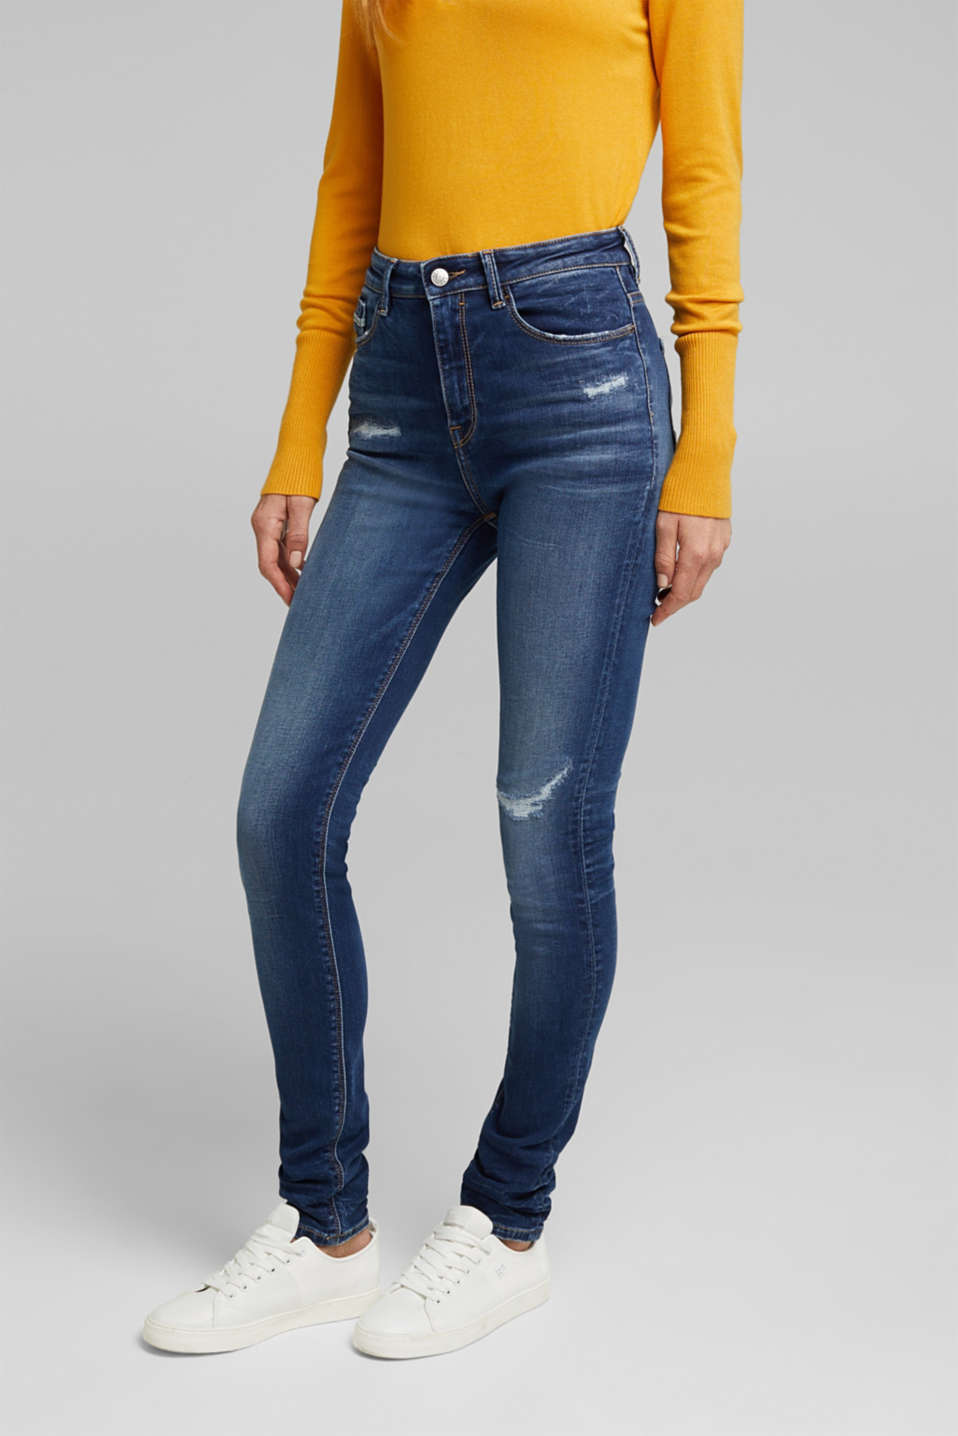 Esprit - Skinny jeans with added stretch for comfort